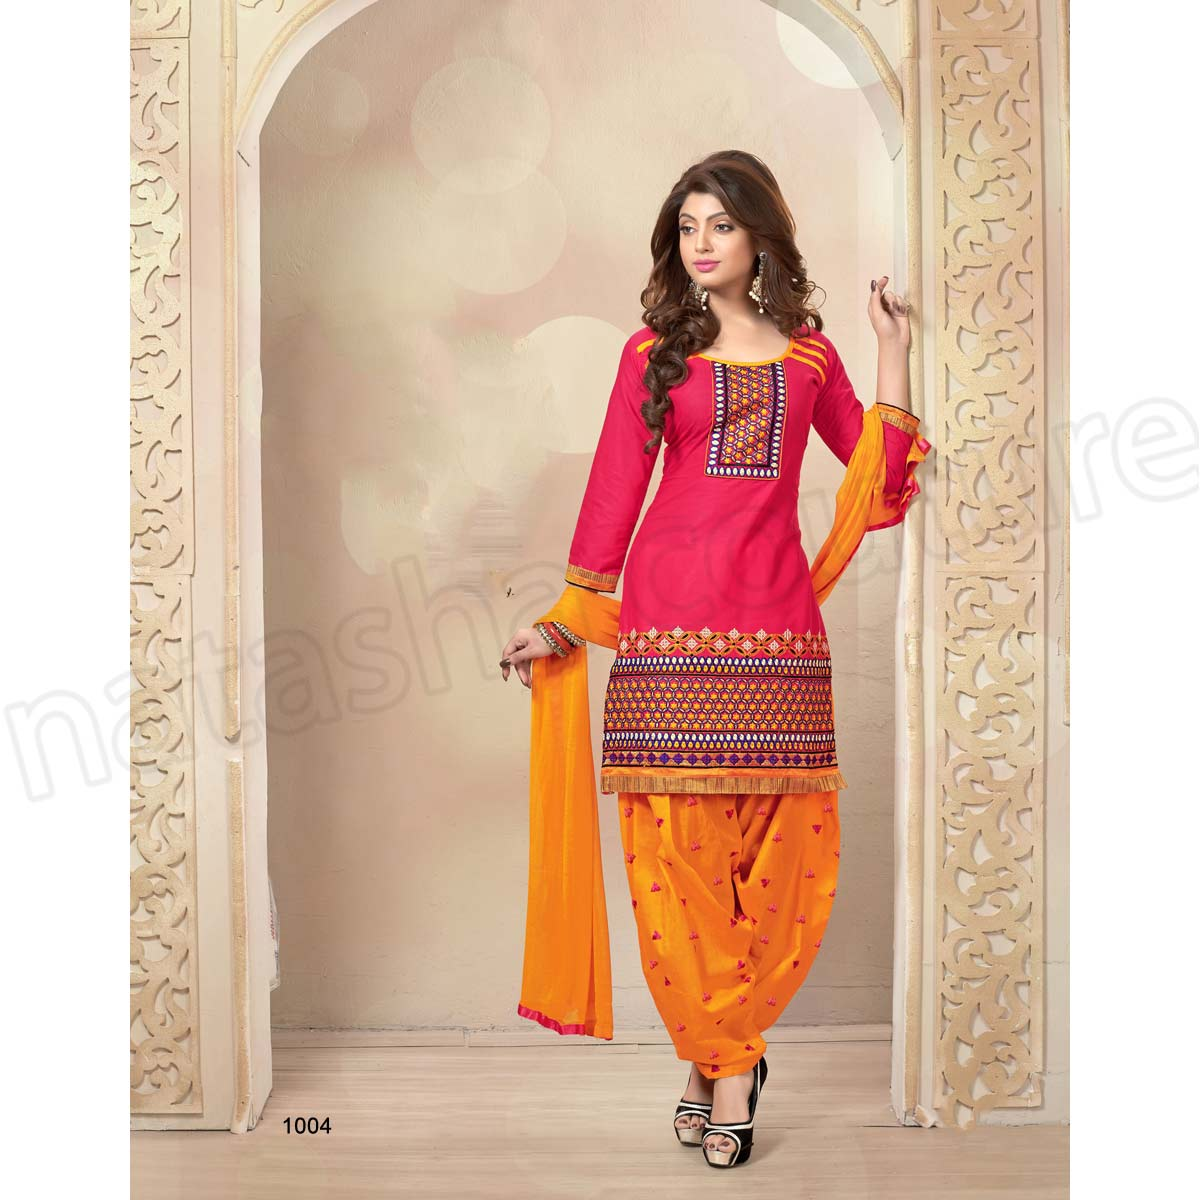 132ac402b0e Latest Indian Patiala shalwar kameez fashion 2015-2016 (31) ...